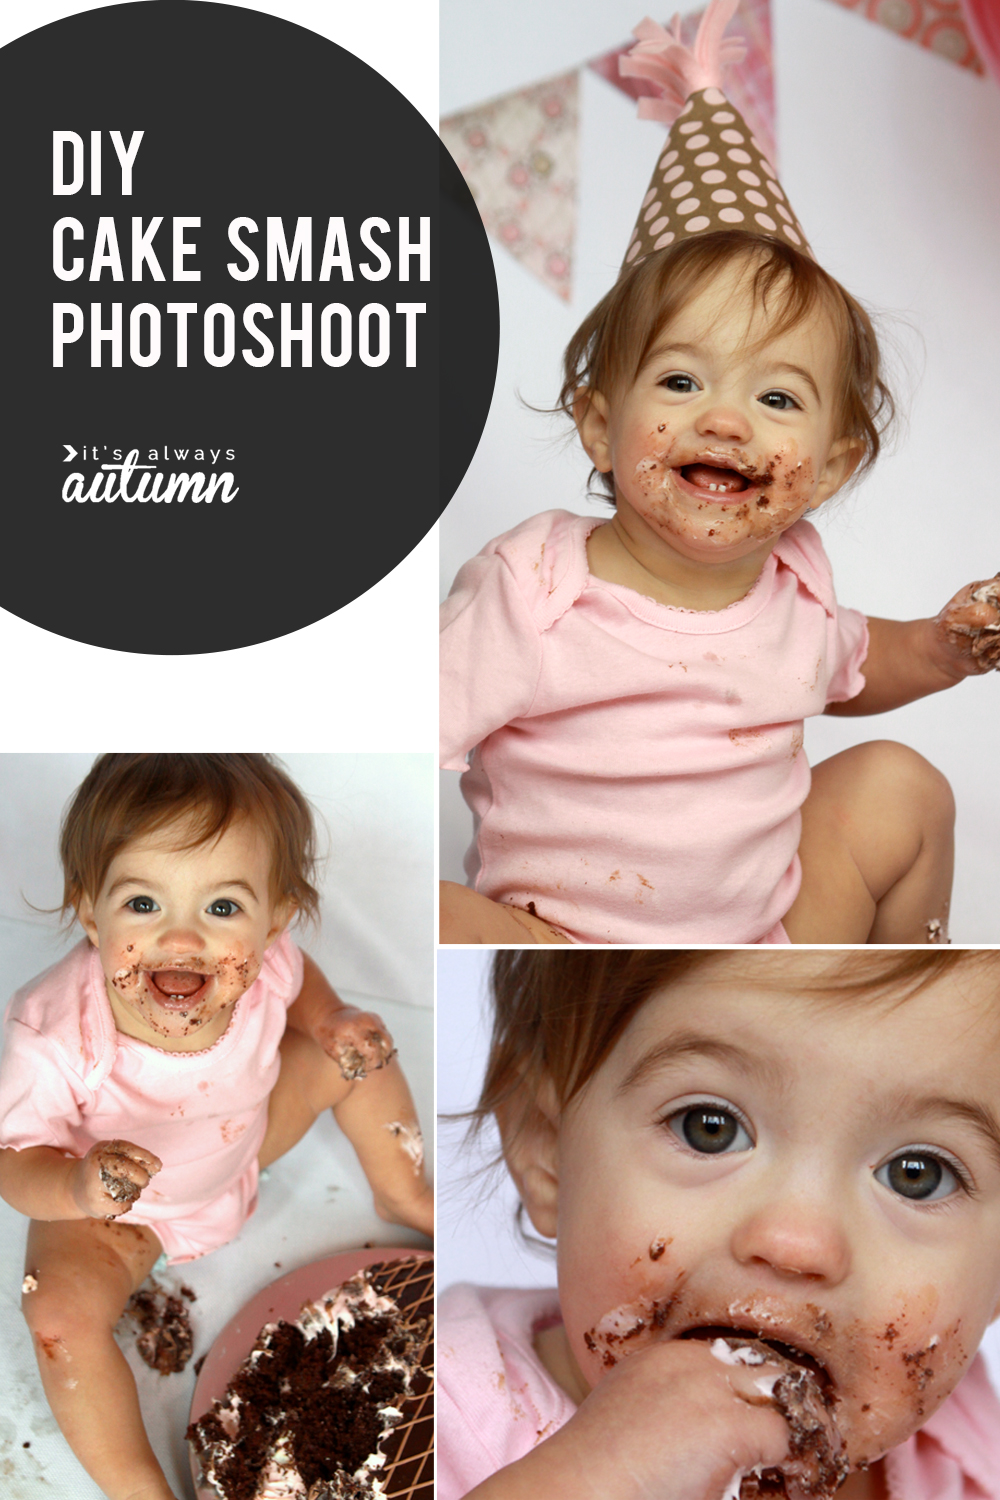 How to set up a DIY cake smash photoshoot at home for great photos of baby's first birthday.